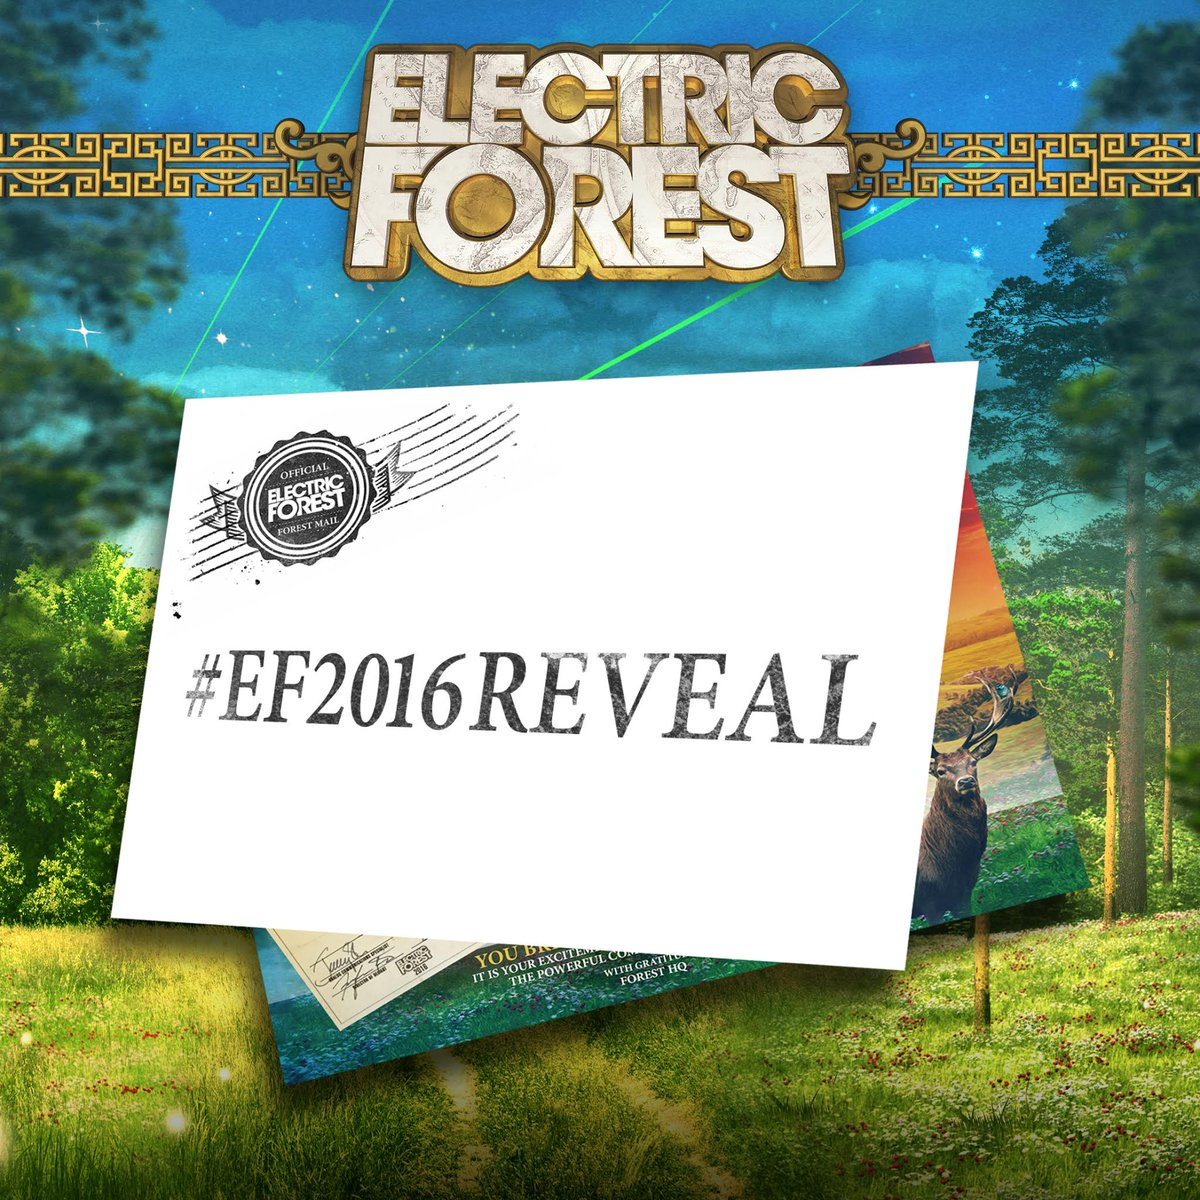 Tomorrow, the Forest Family will reveal the initial lineup for Electric Forest 2016. https://t.co/xArt17TzSi